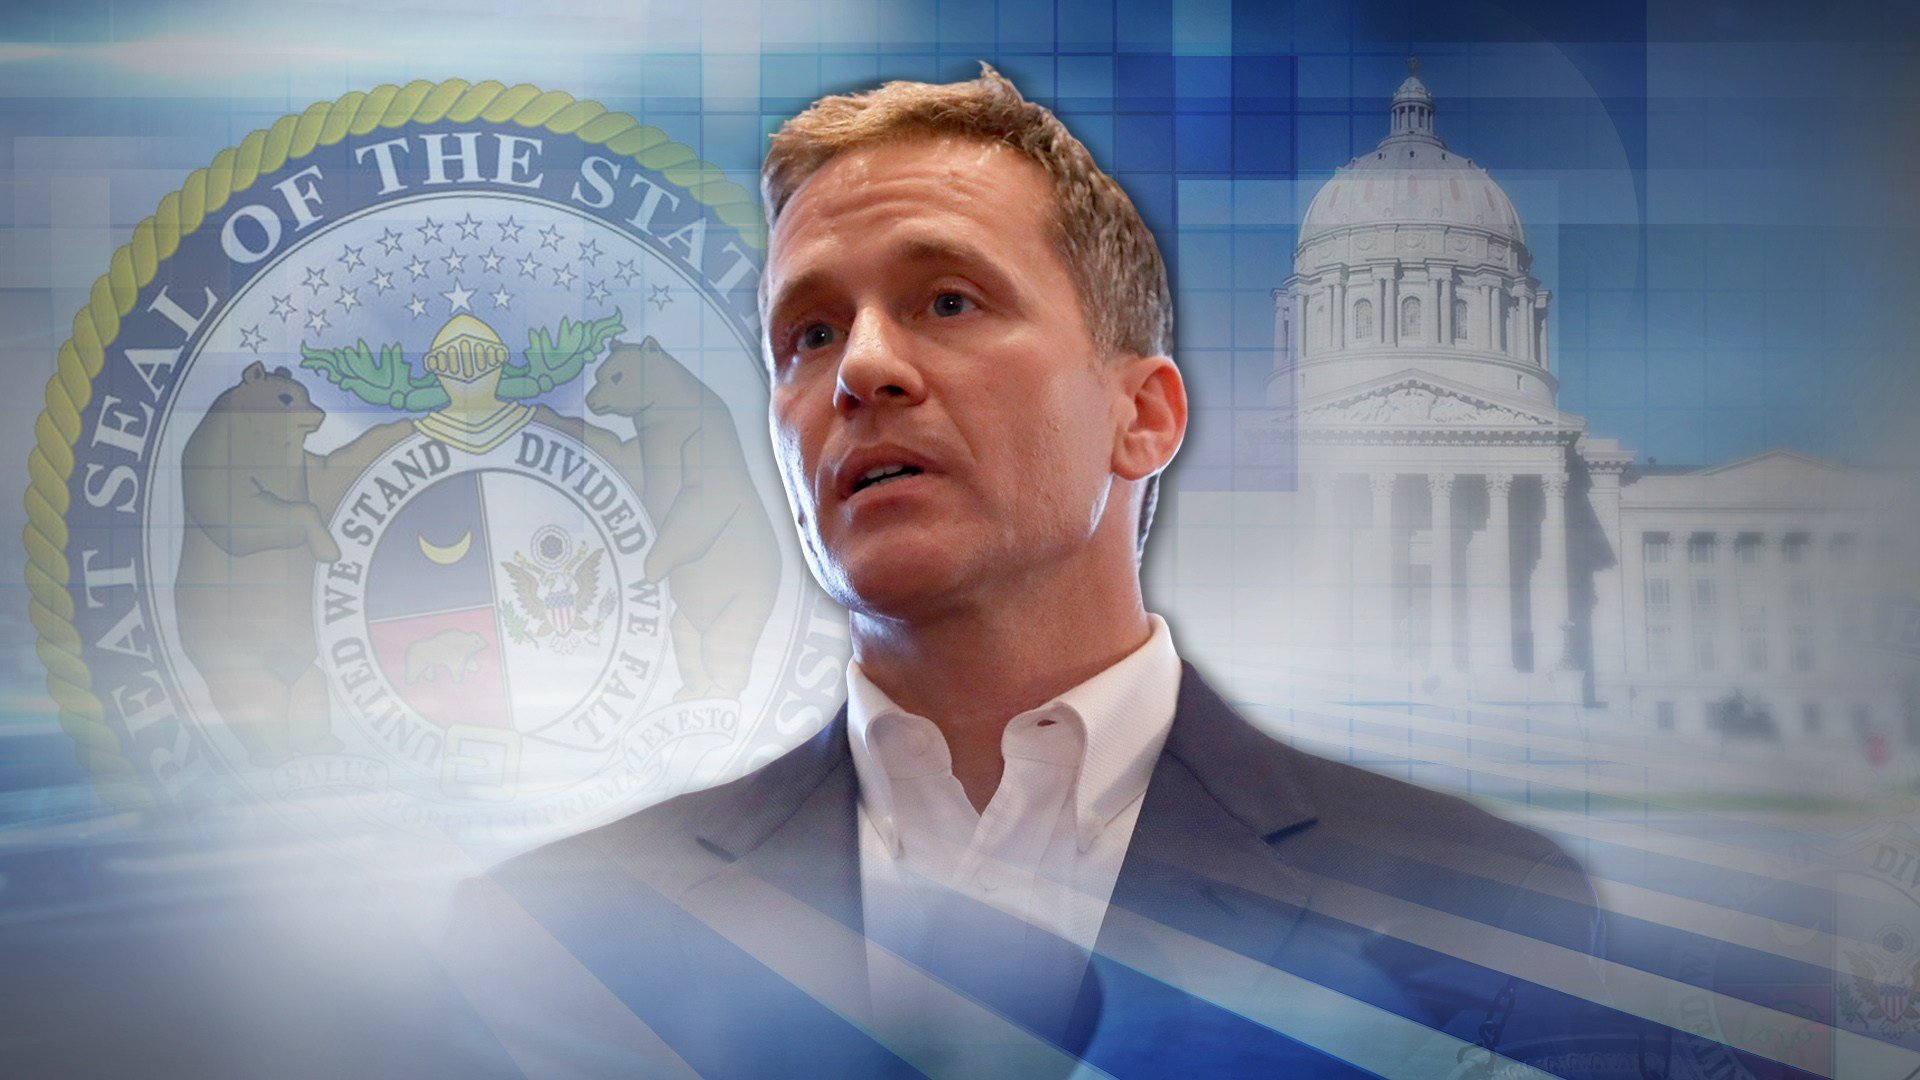 Lawyer Al Watkins said that in late January or early February 2017 he provided the FBI with a copy of an audio recording the man secretly made of his then-wife describing her interaction with Greitens. (File photo)